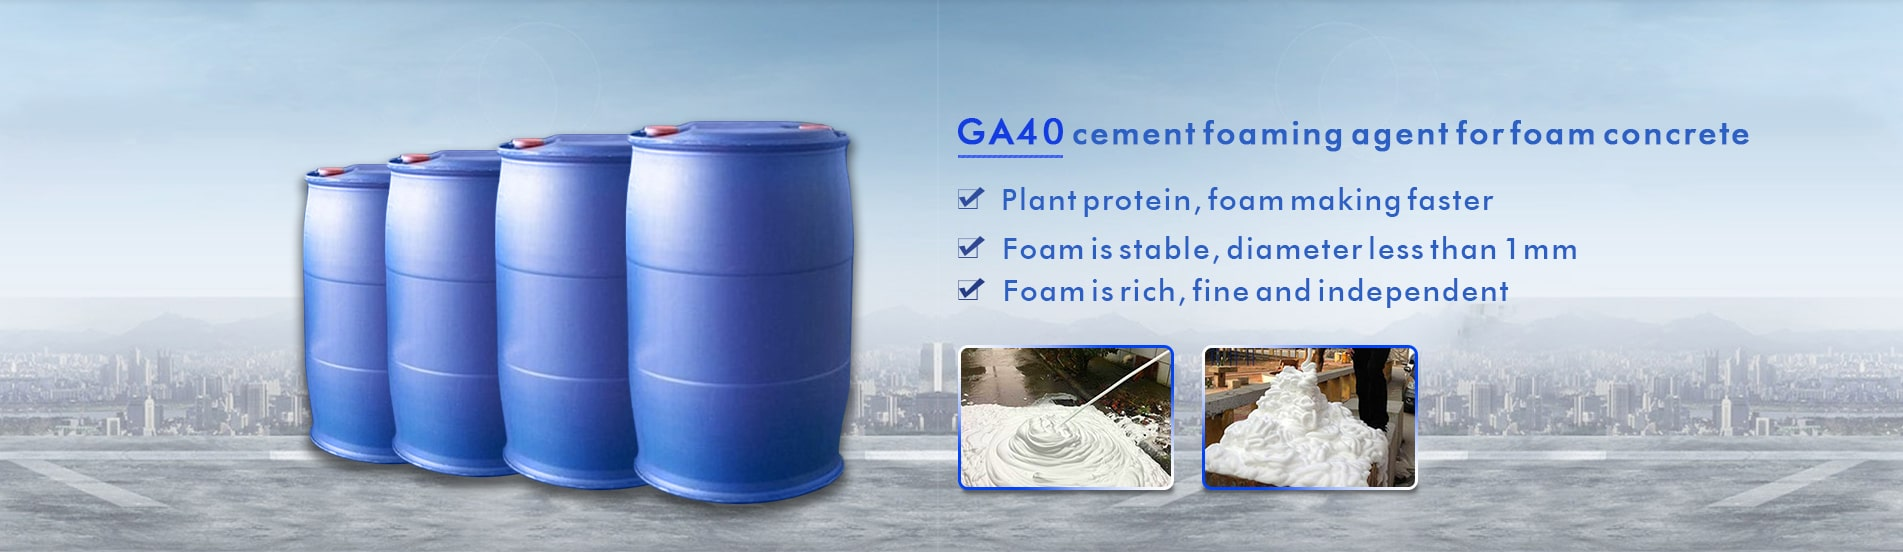 cement foa ming agent forfoam concrete